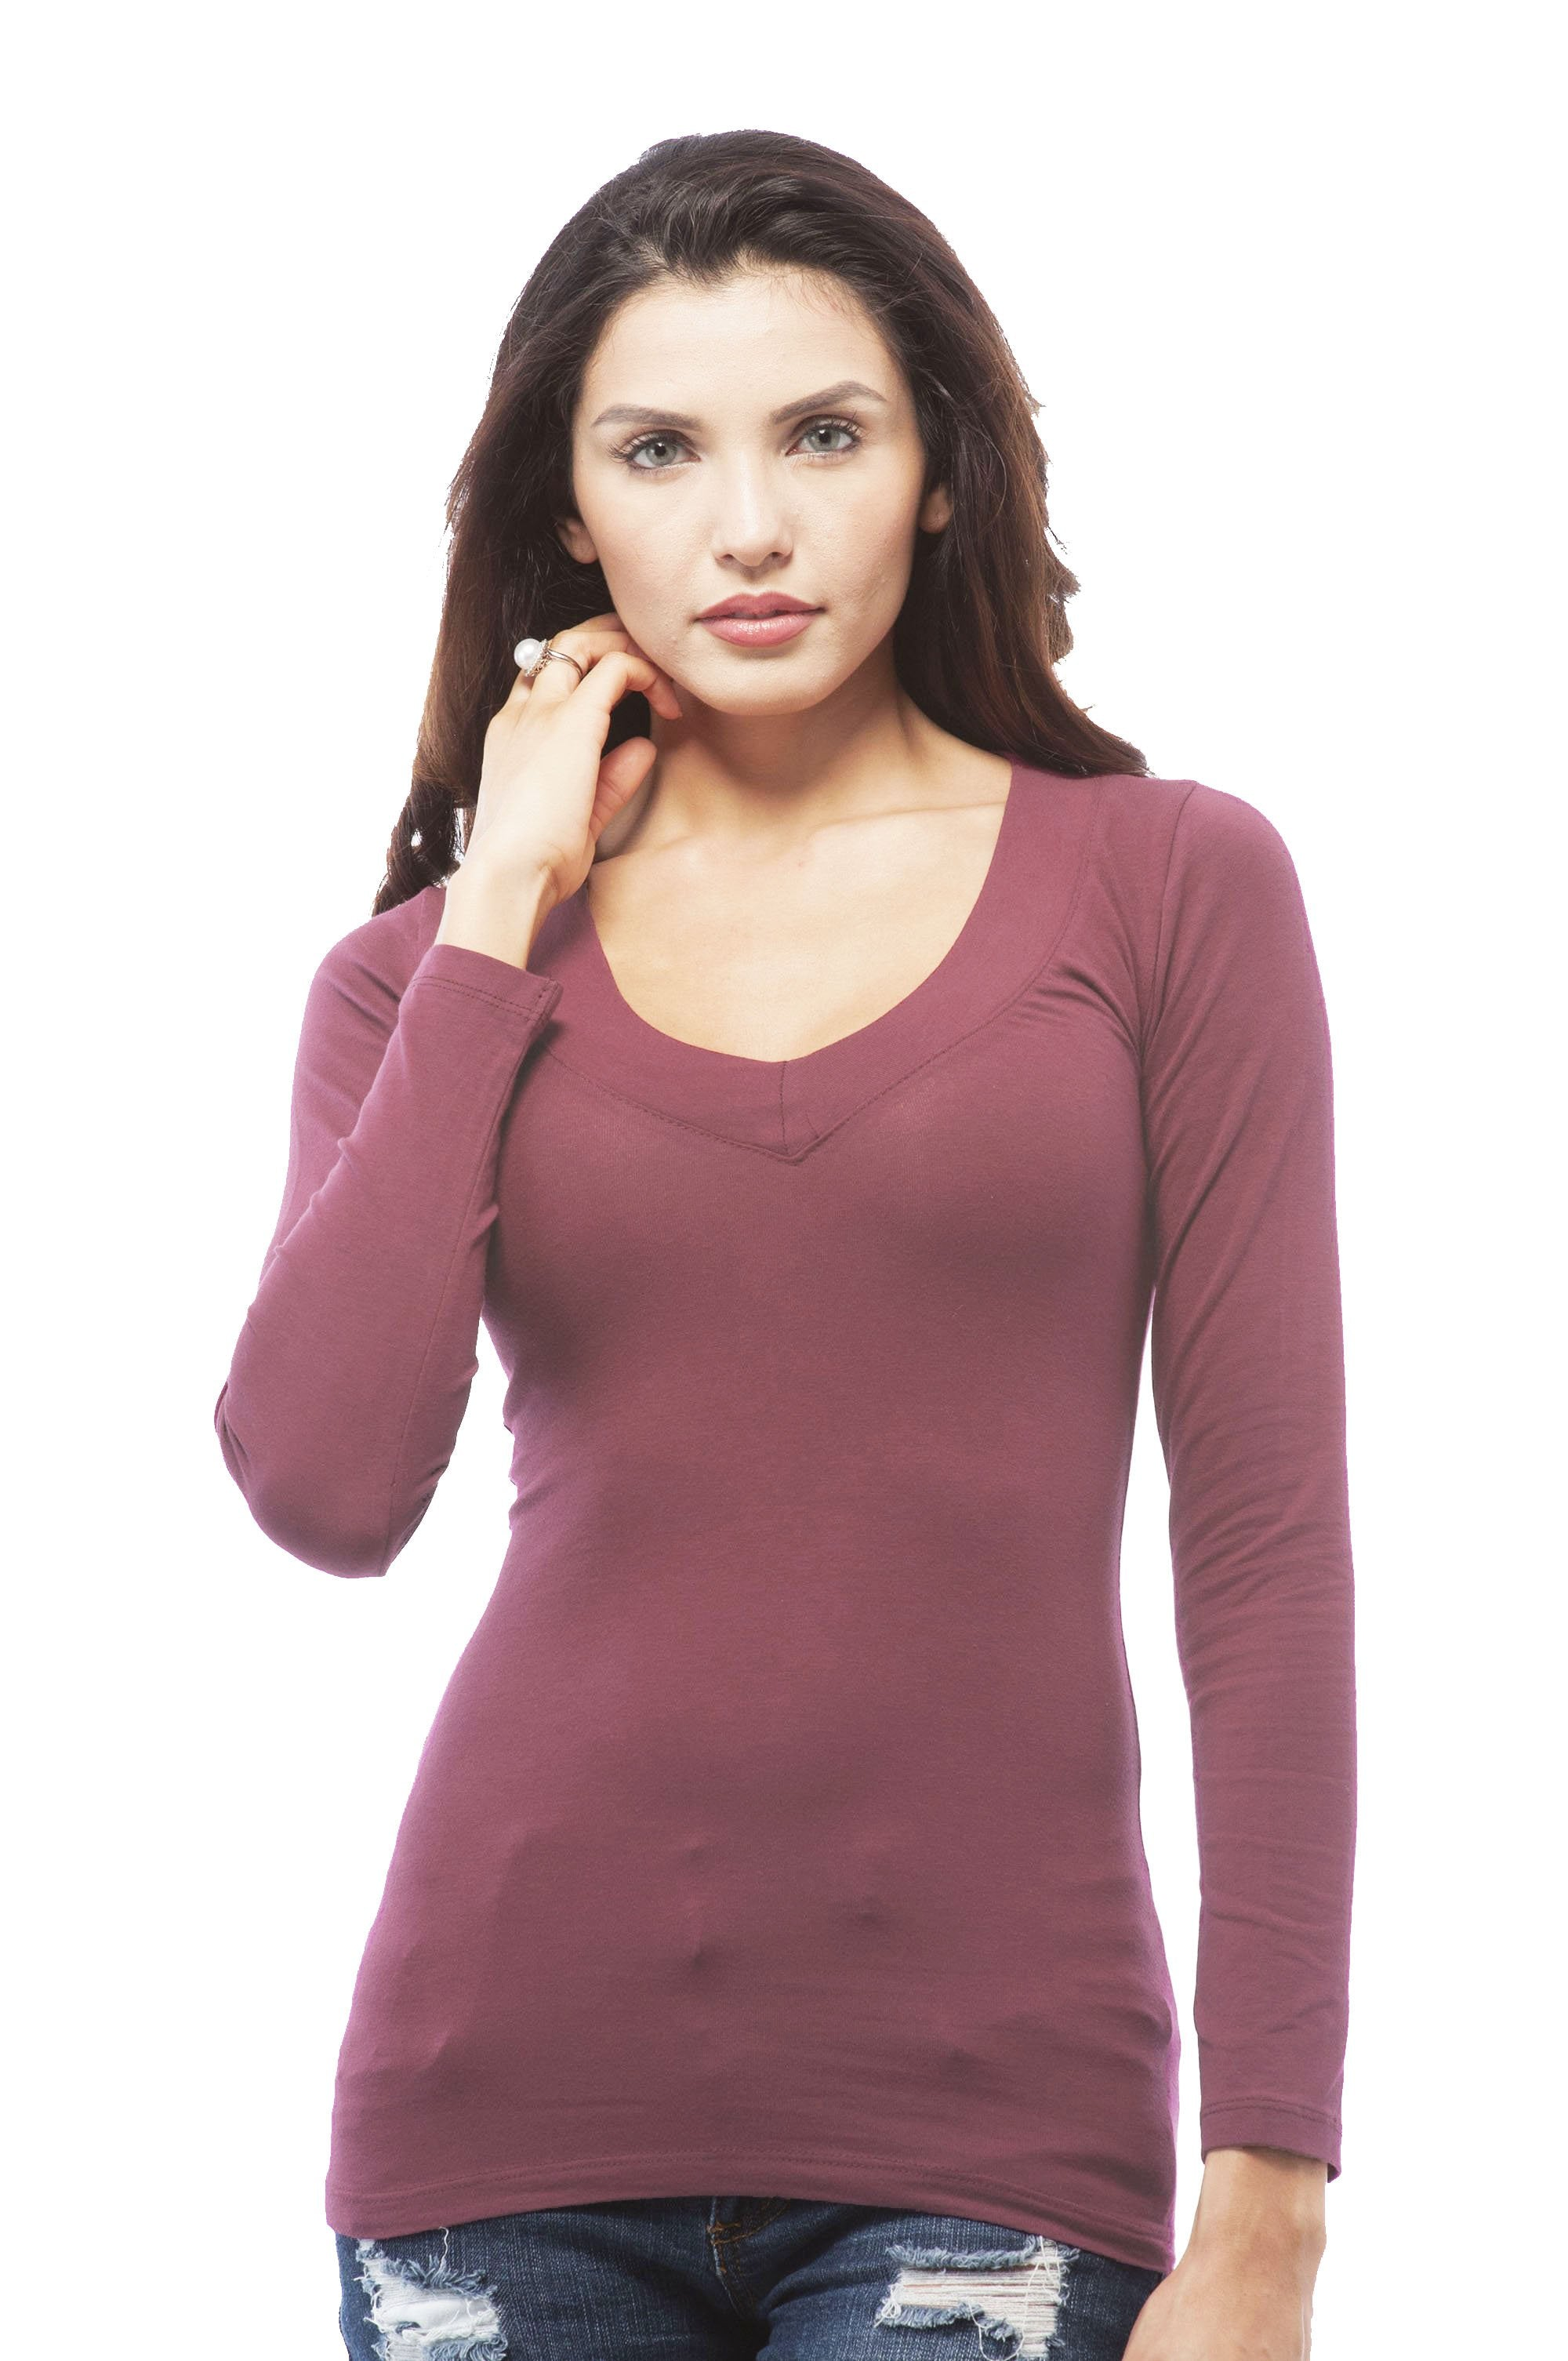 Women's Basic Plain Long Sleeves Deep V Neck Shirt Top Tee